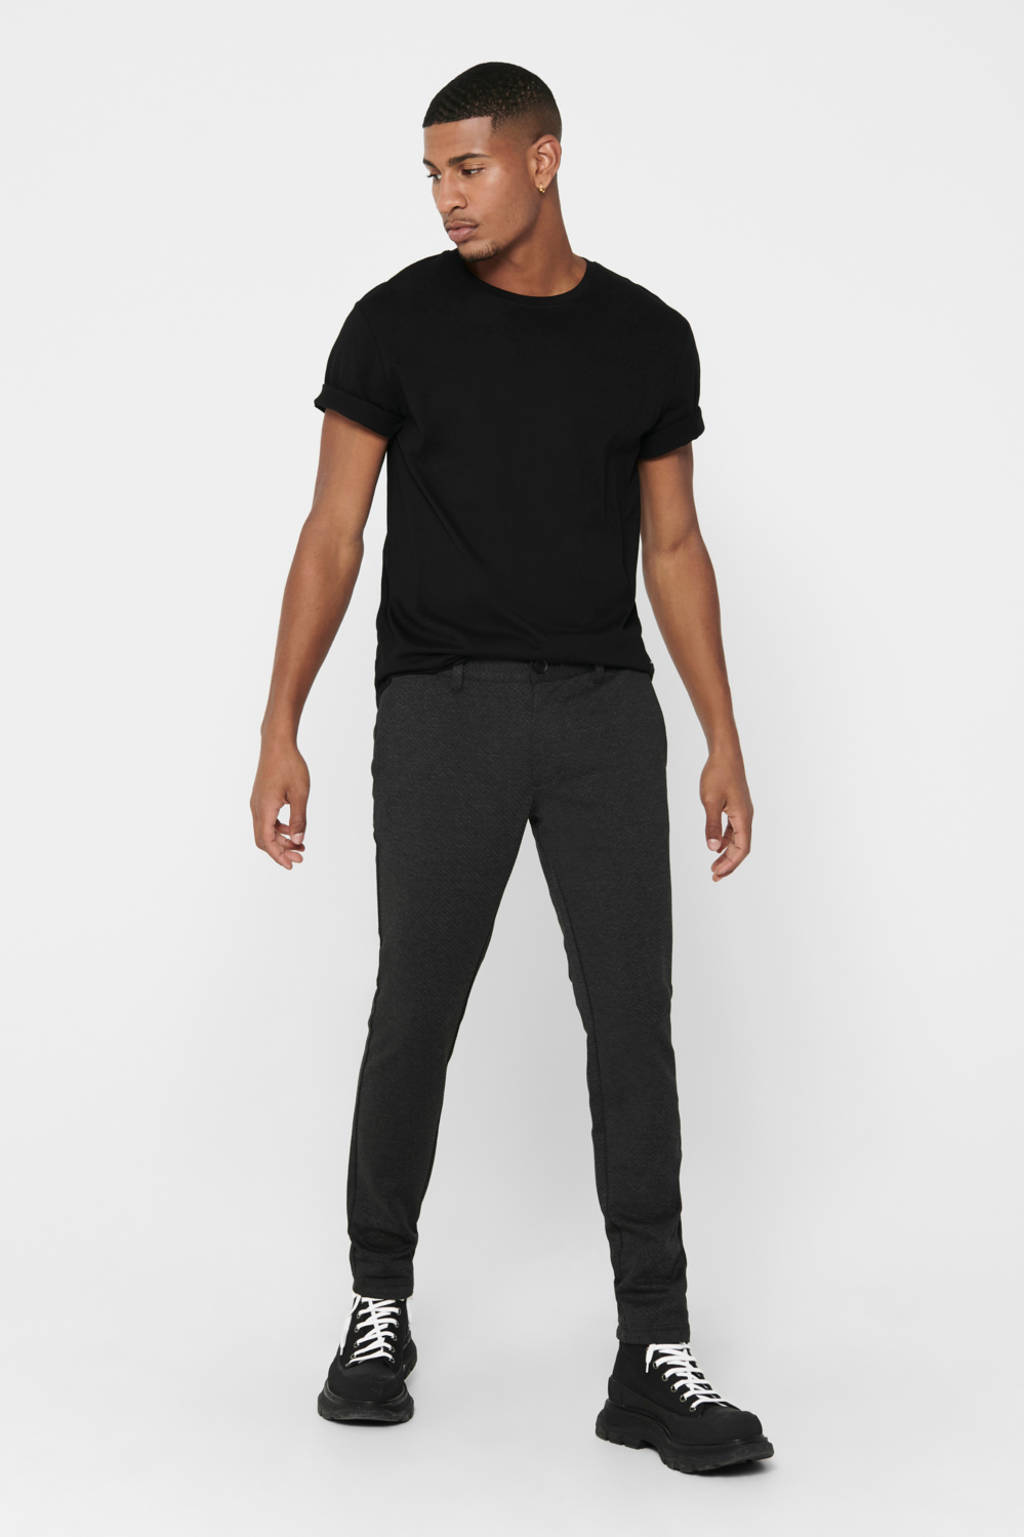 ONLY & SONS gemêleerde slim fit pantalon grijs, Grijs